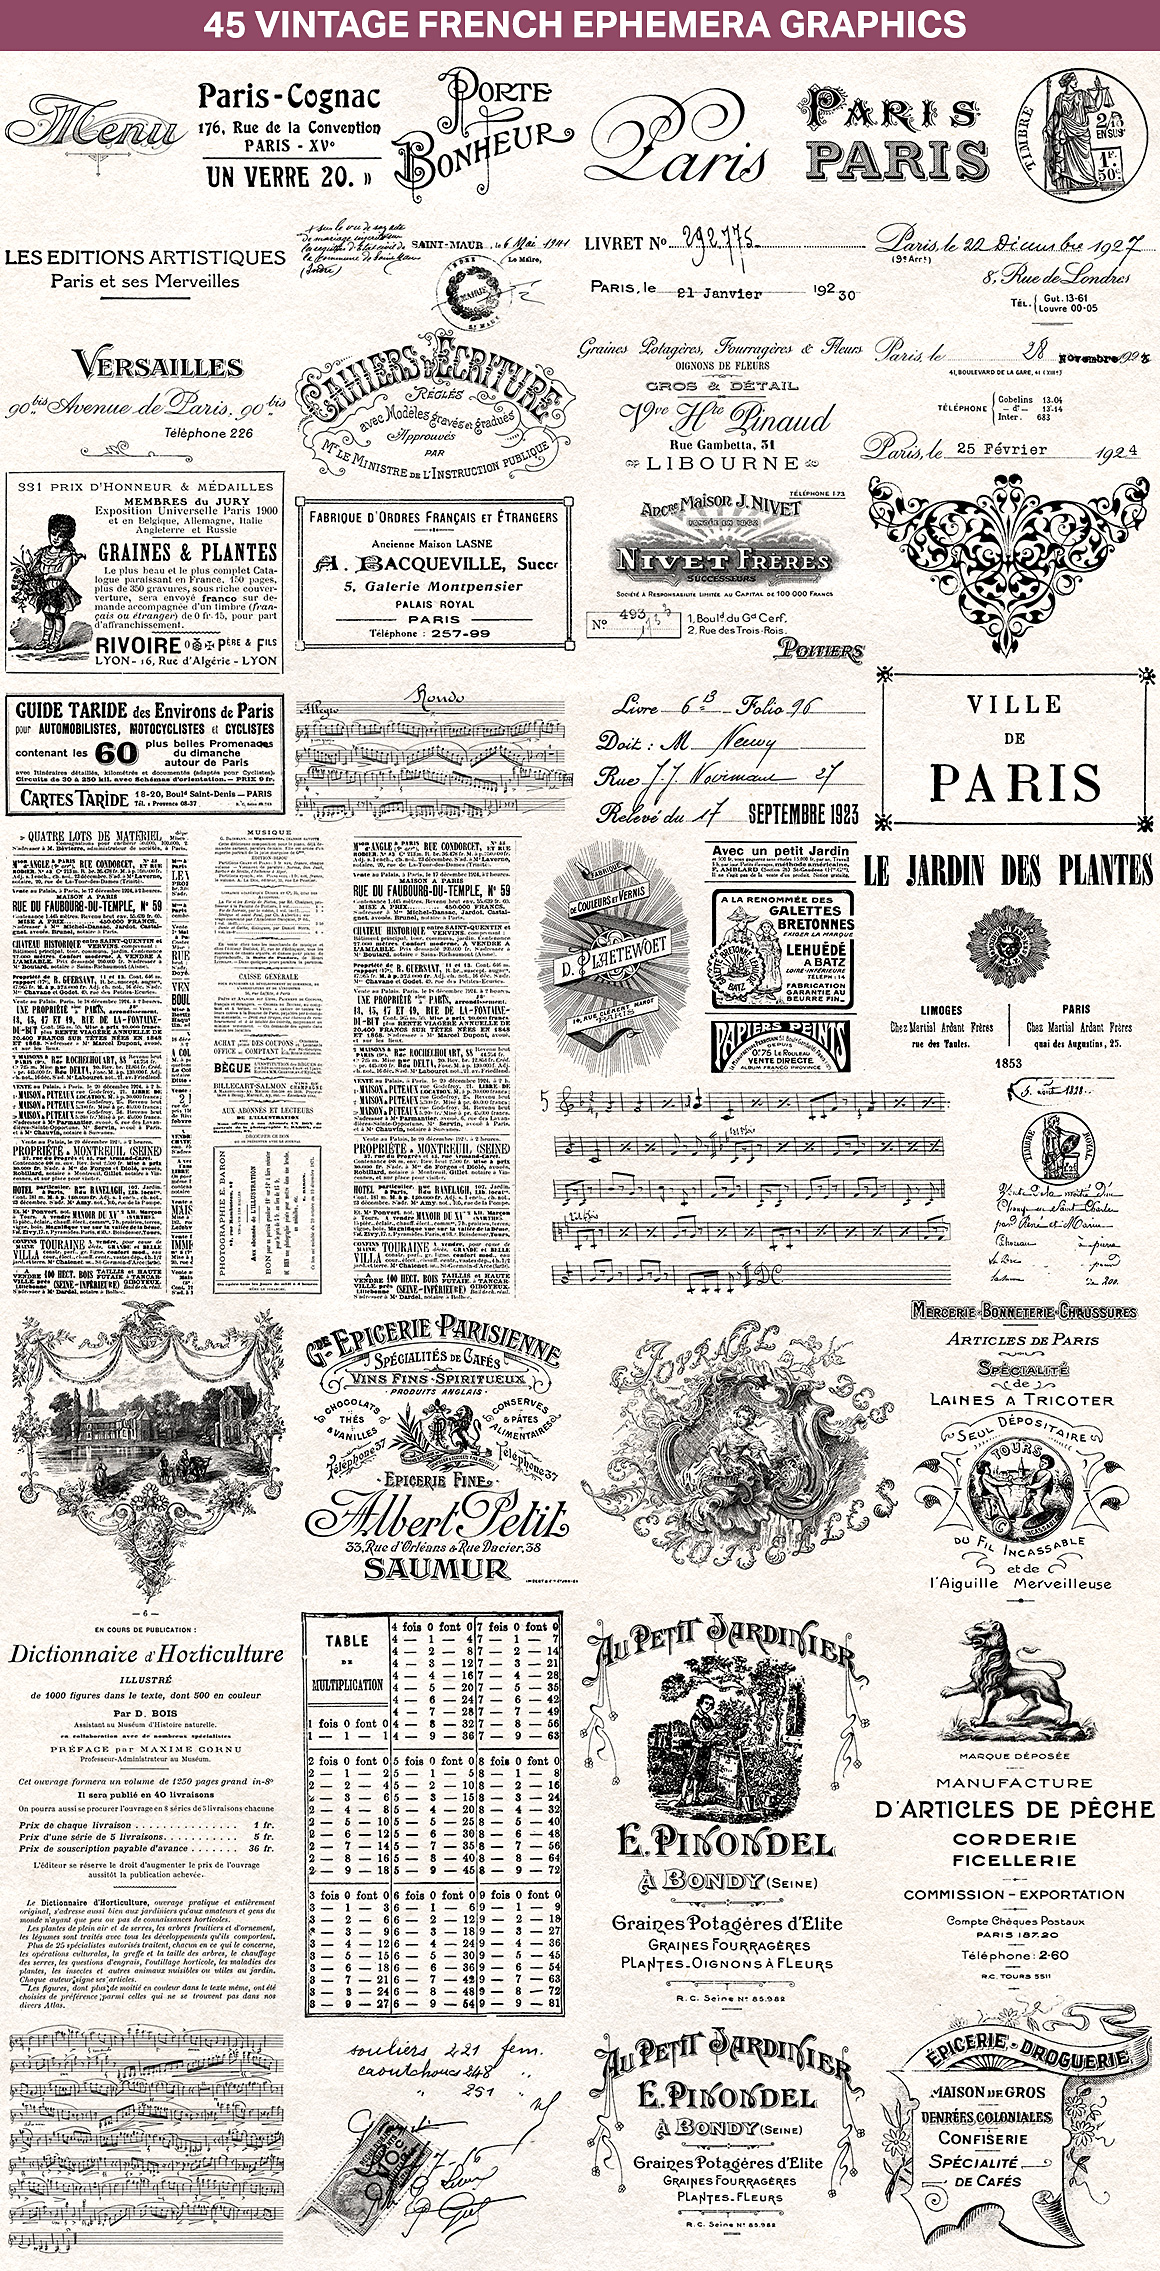 The Essential Vintage French Graphics Collection